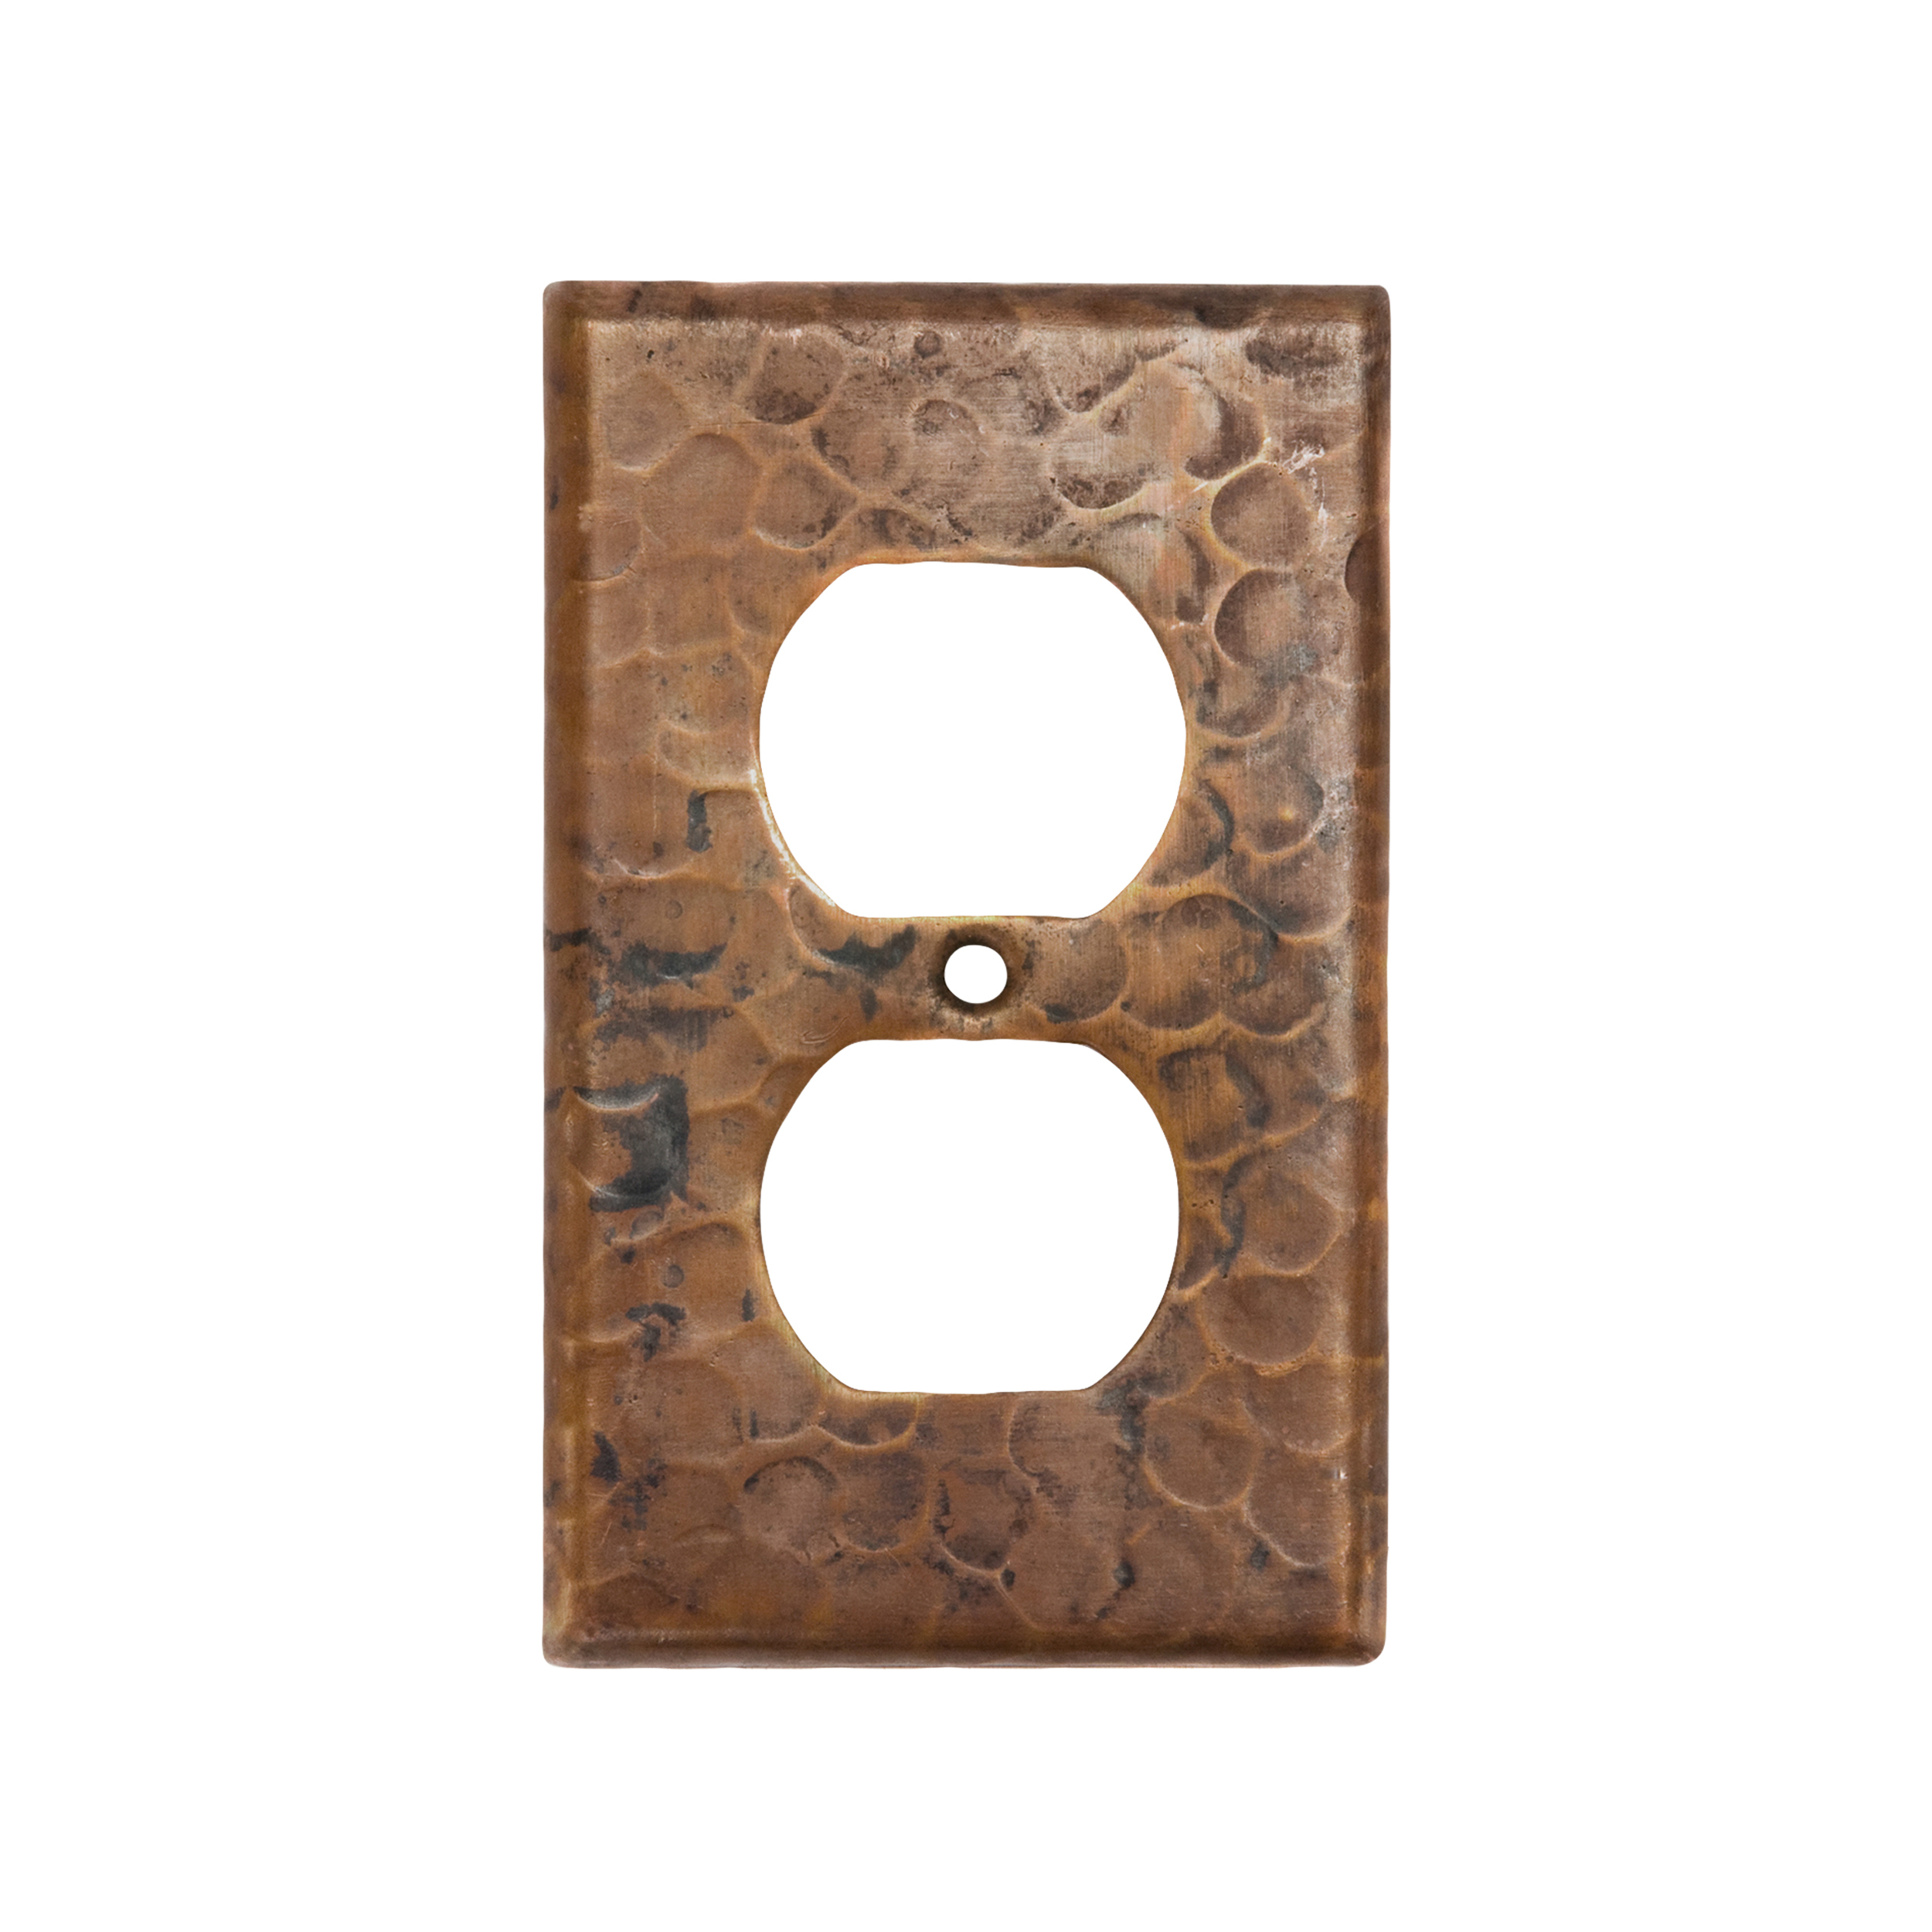 Single Duplex 2-Hole Outlet Switchplate Cover